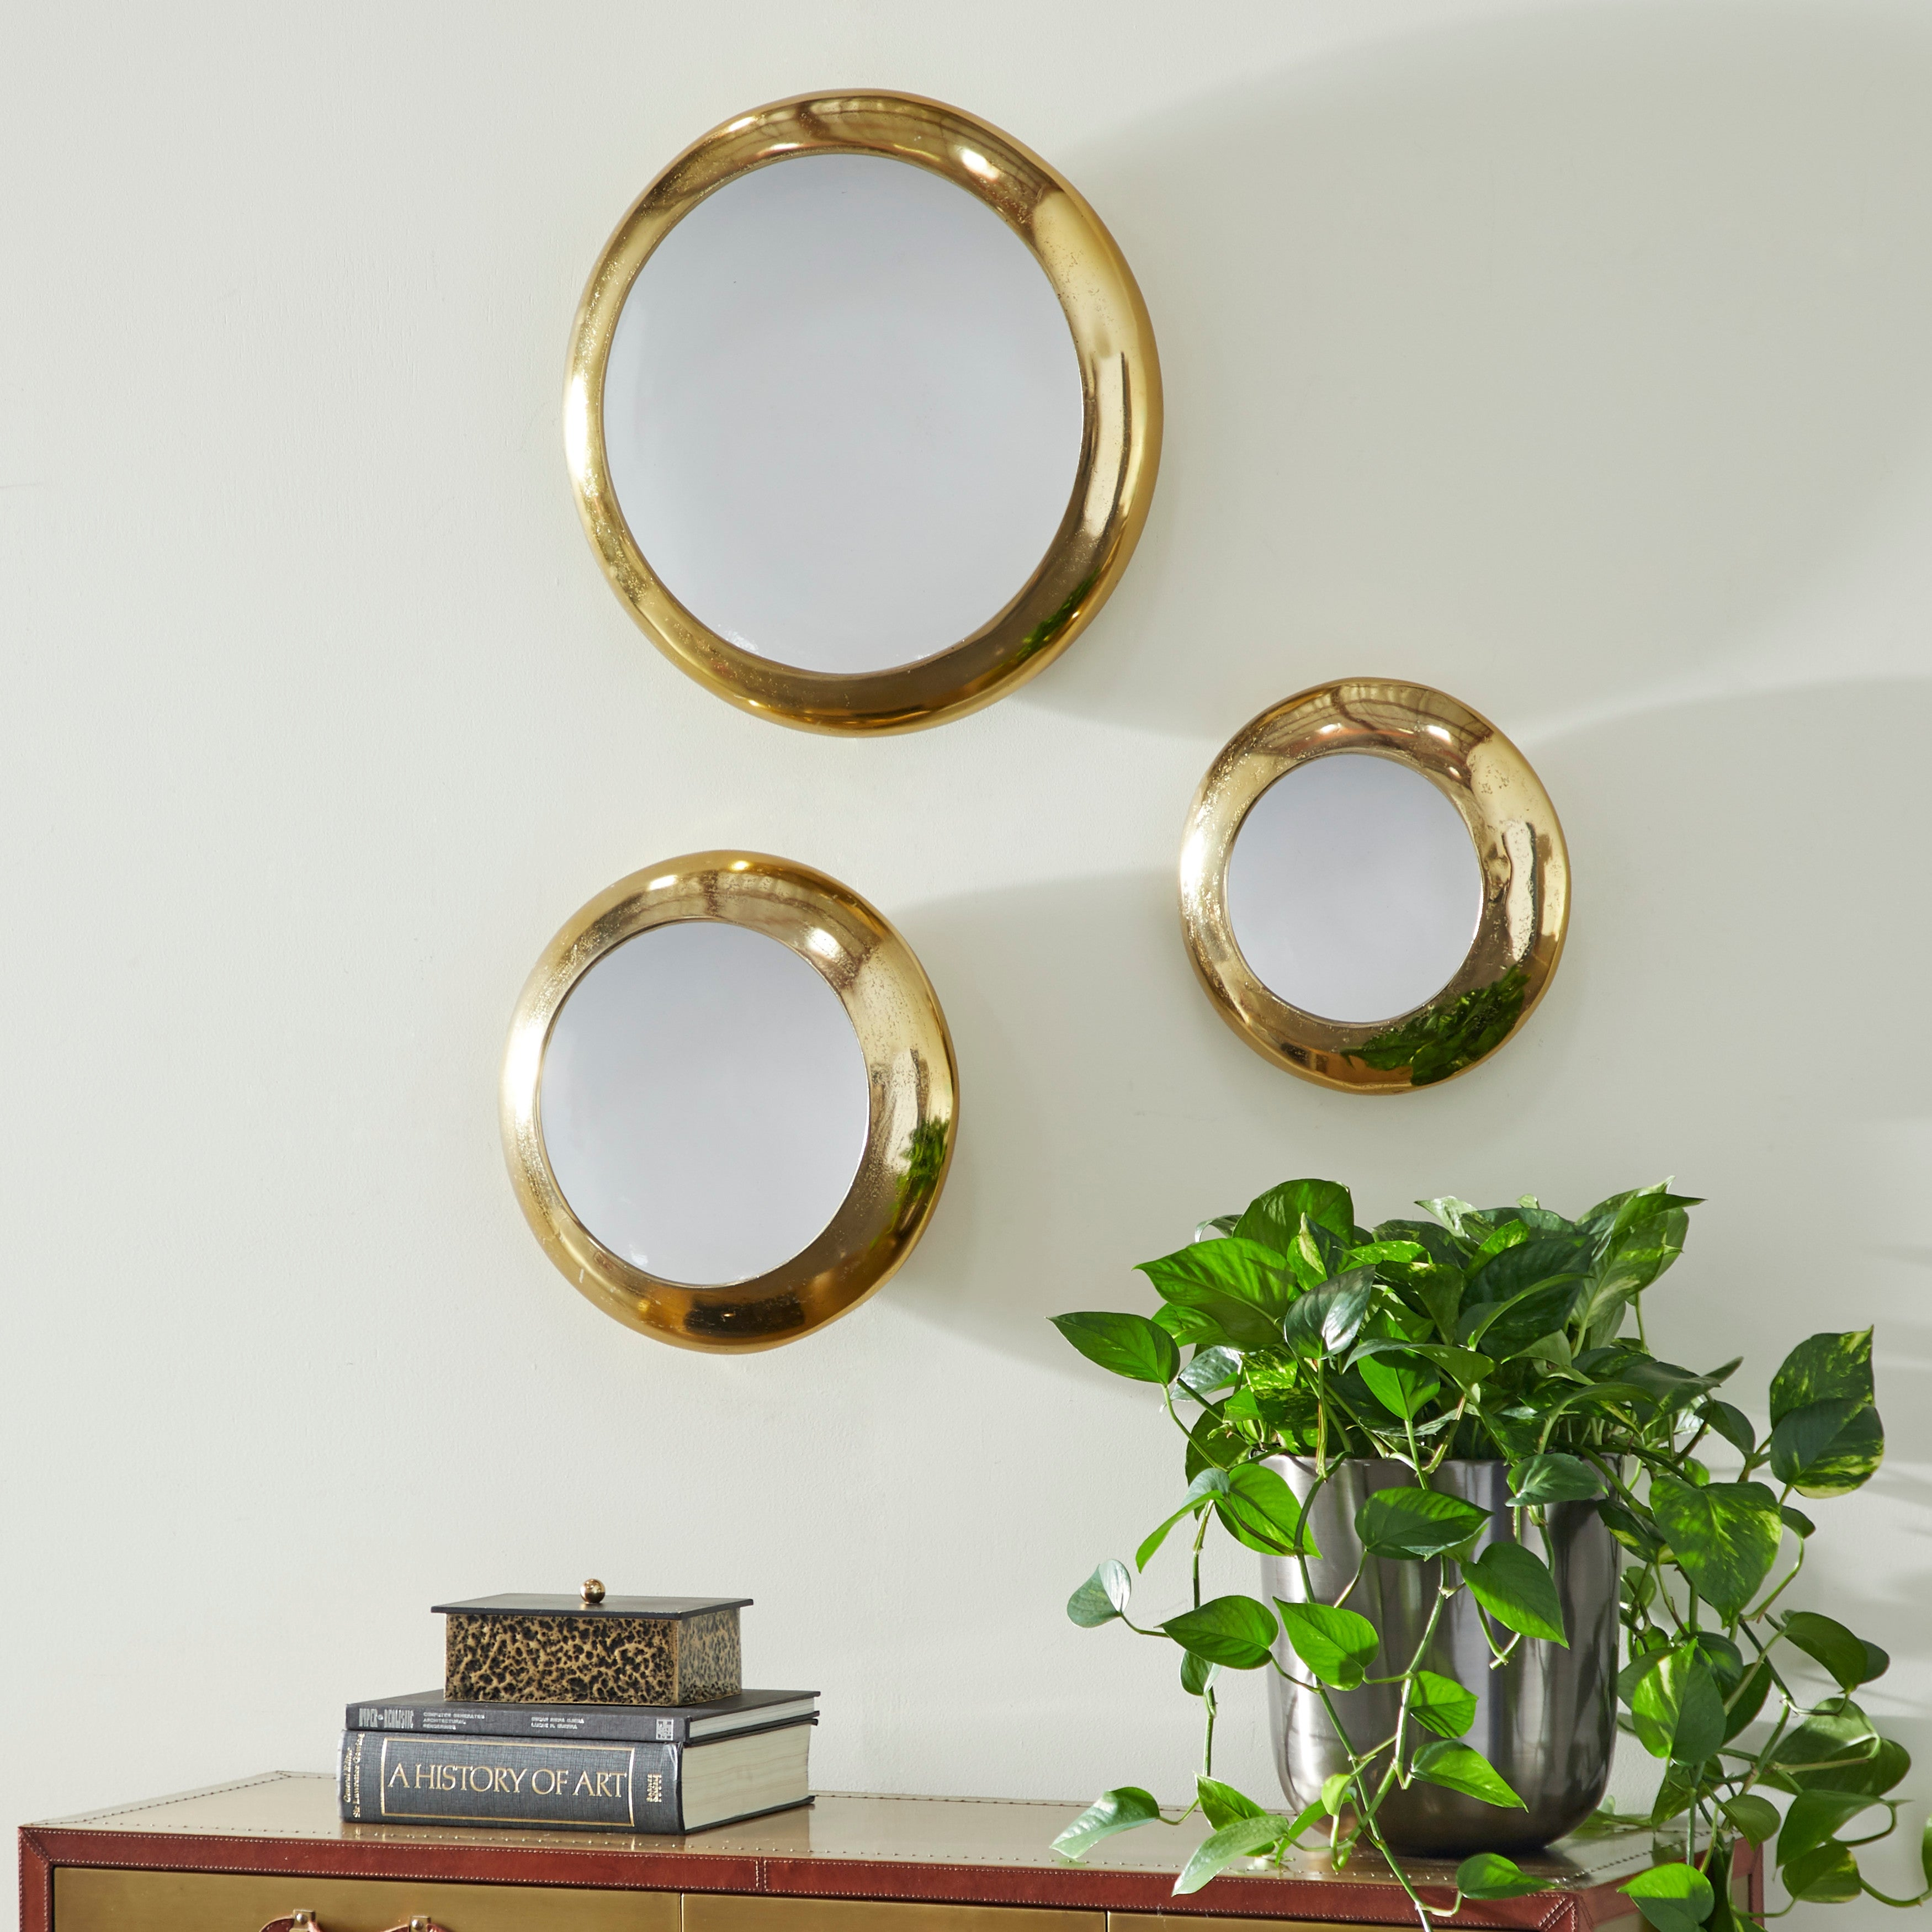 Metallic Gold And White Round Metal Plate Wall Decor Set Of 3 19 15 12 On Sale Overstock 32114535